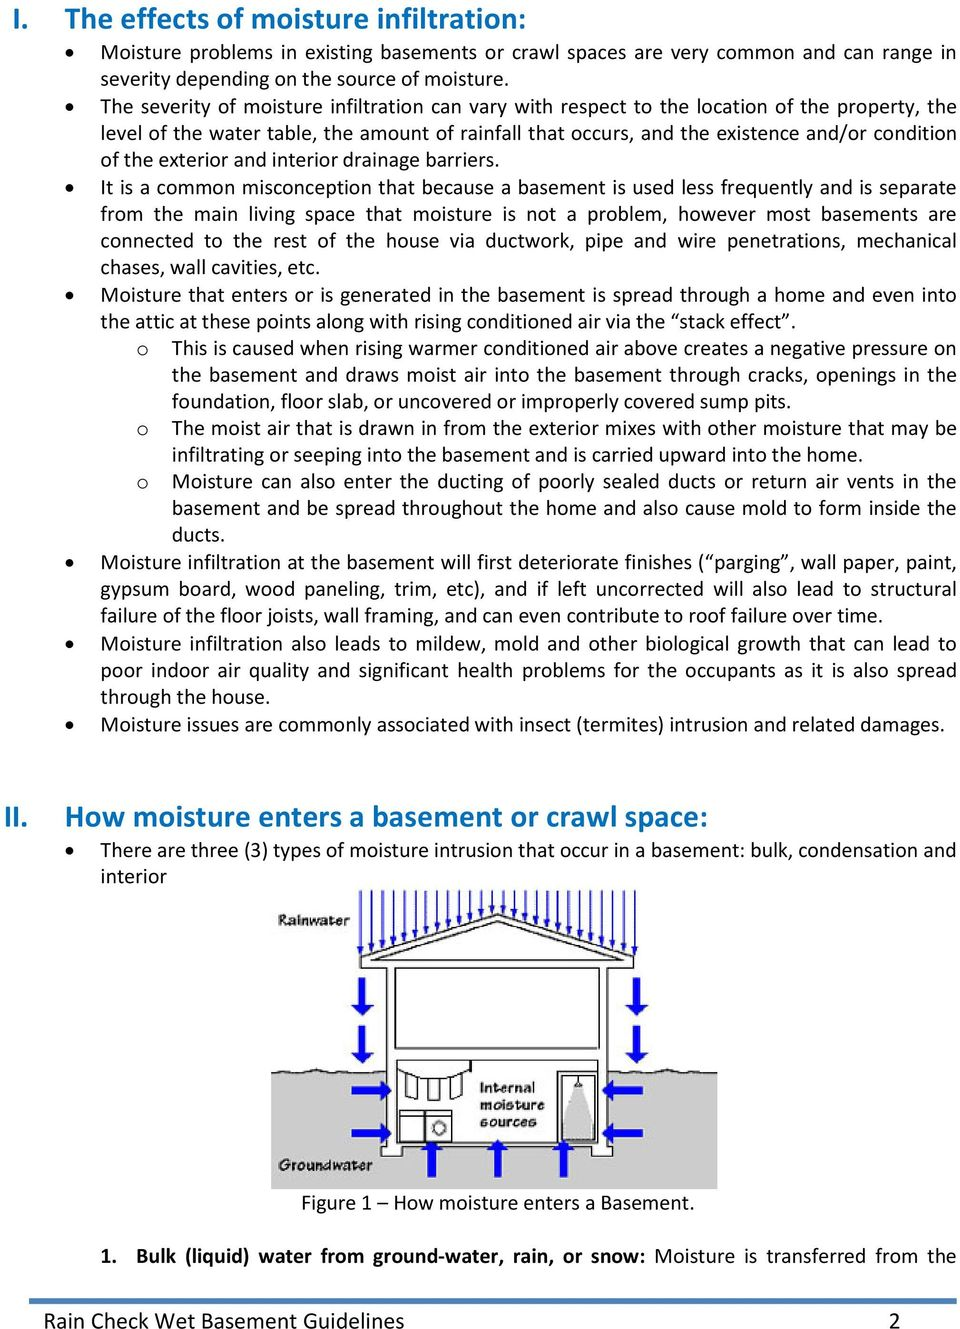 Guidelines For Inspecting Moisture Infiltration In Basements Crawl